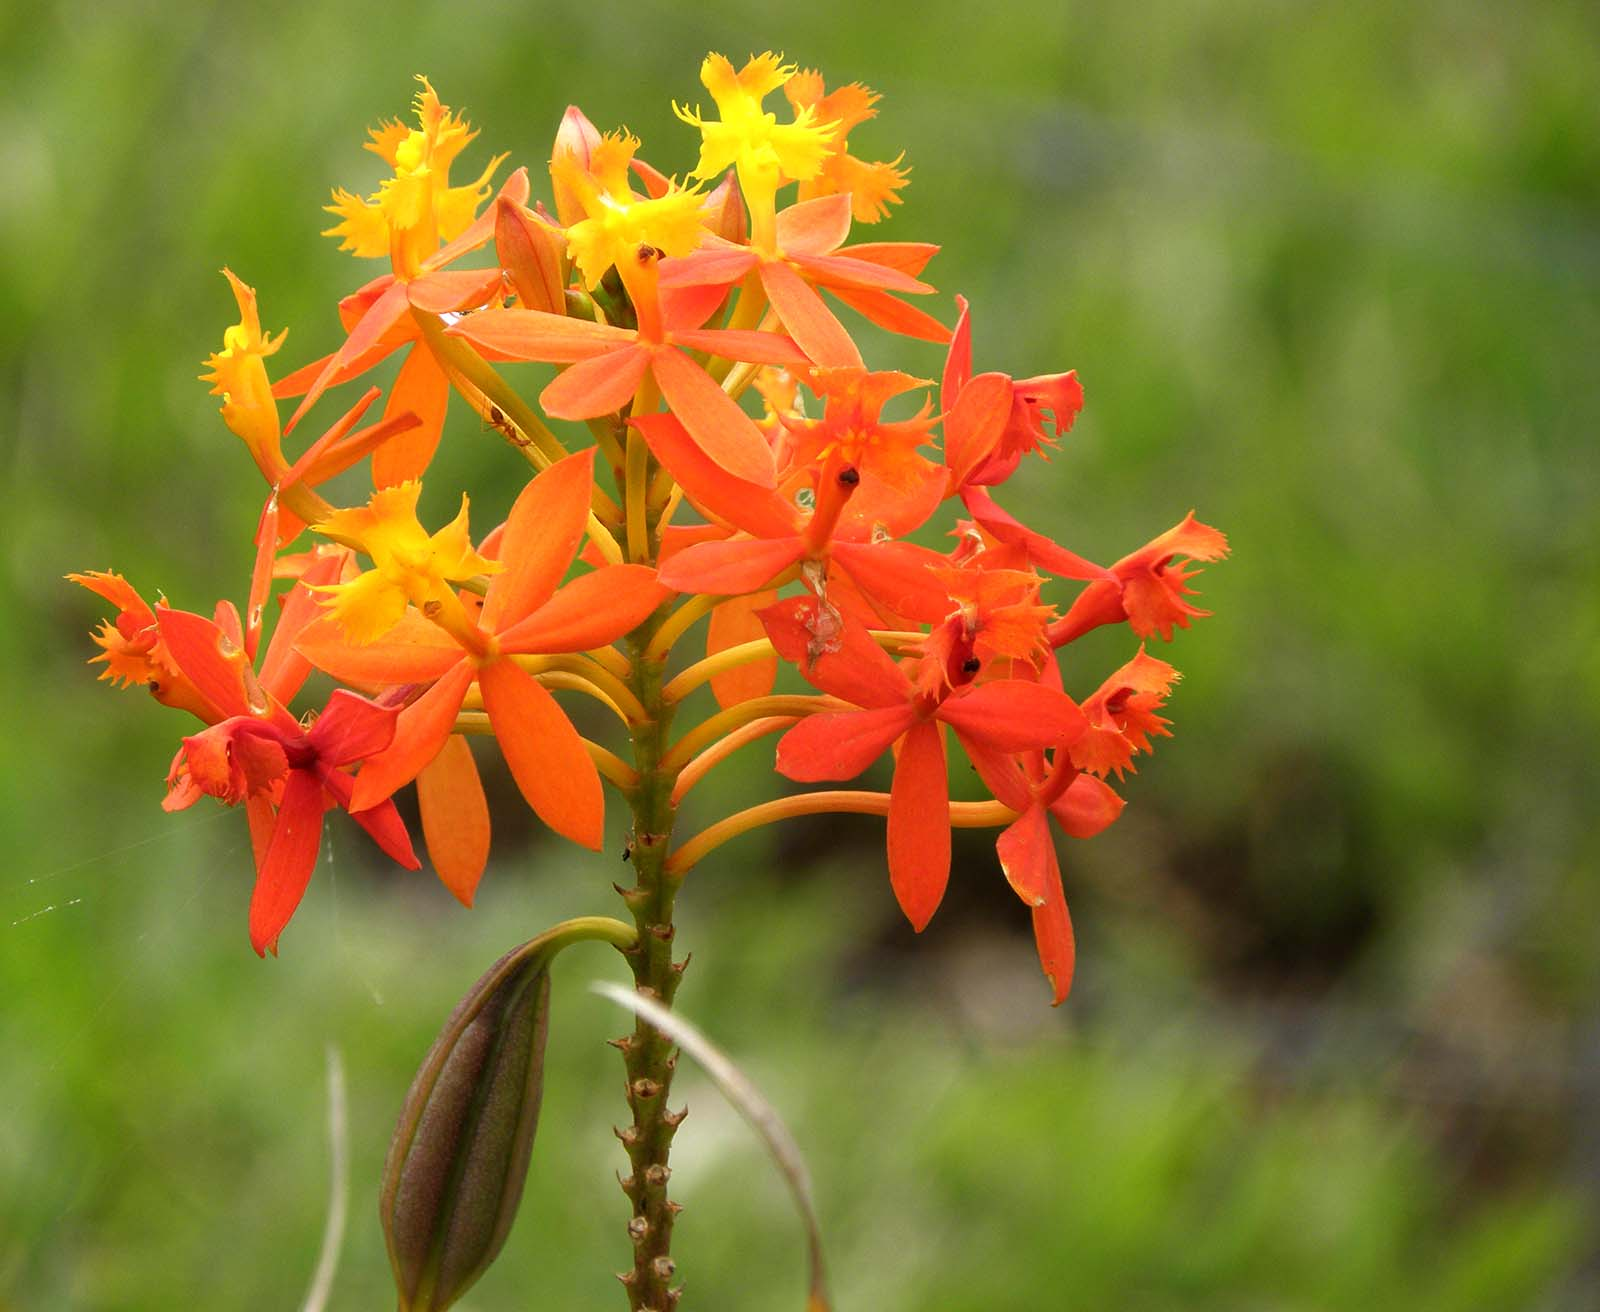 Orange Flowers Names And Pictures Euffslemani